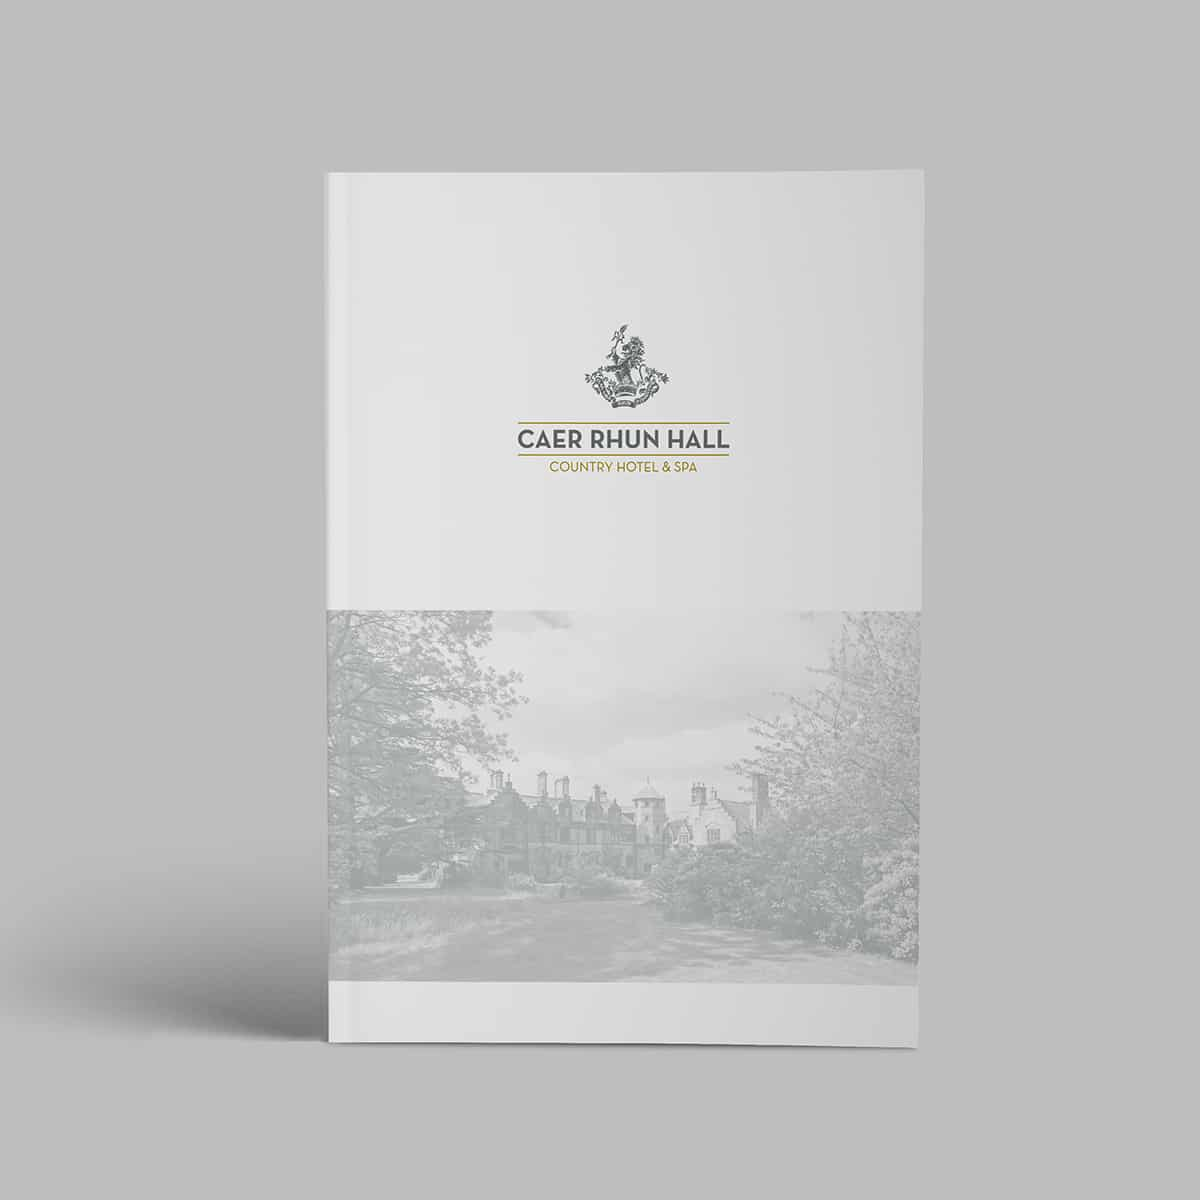 Cover design for Caer Rhun Hall brochure